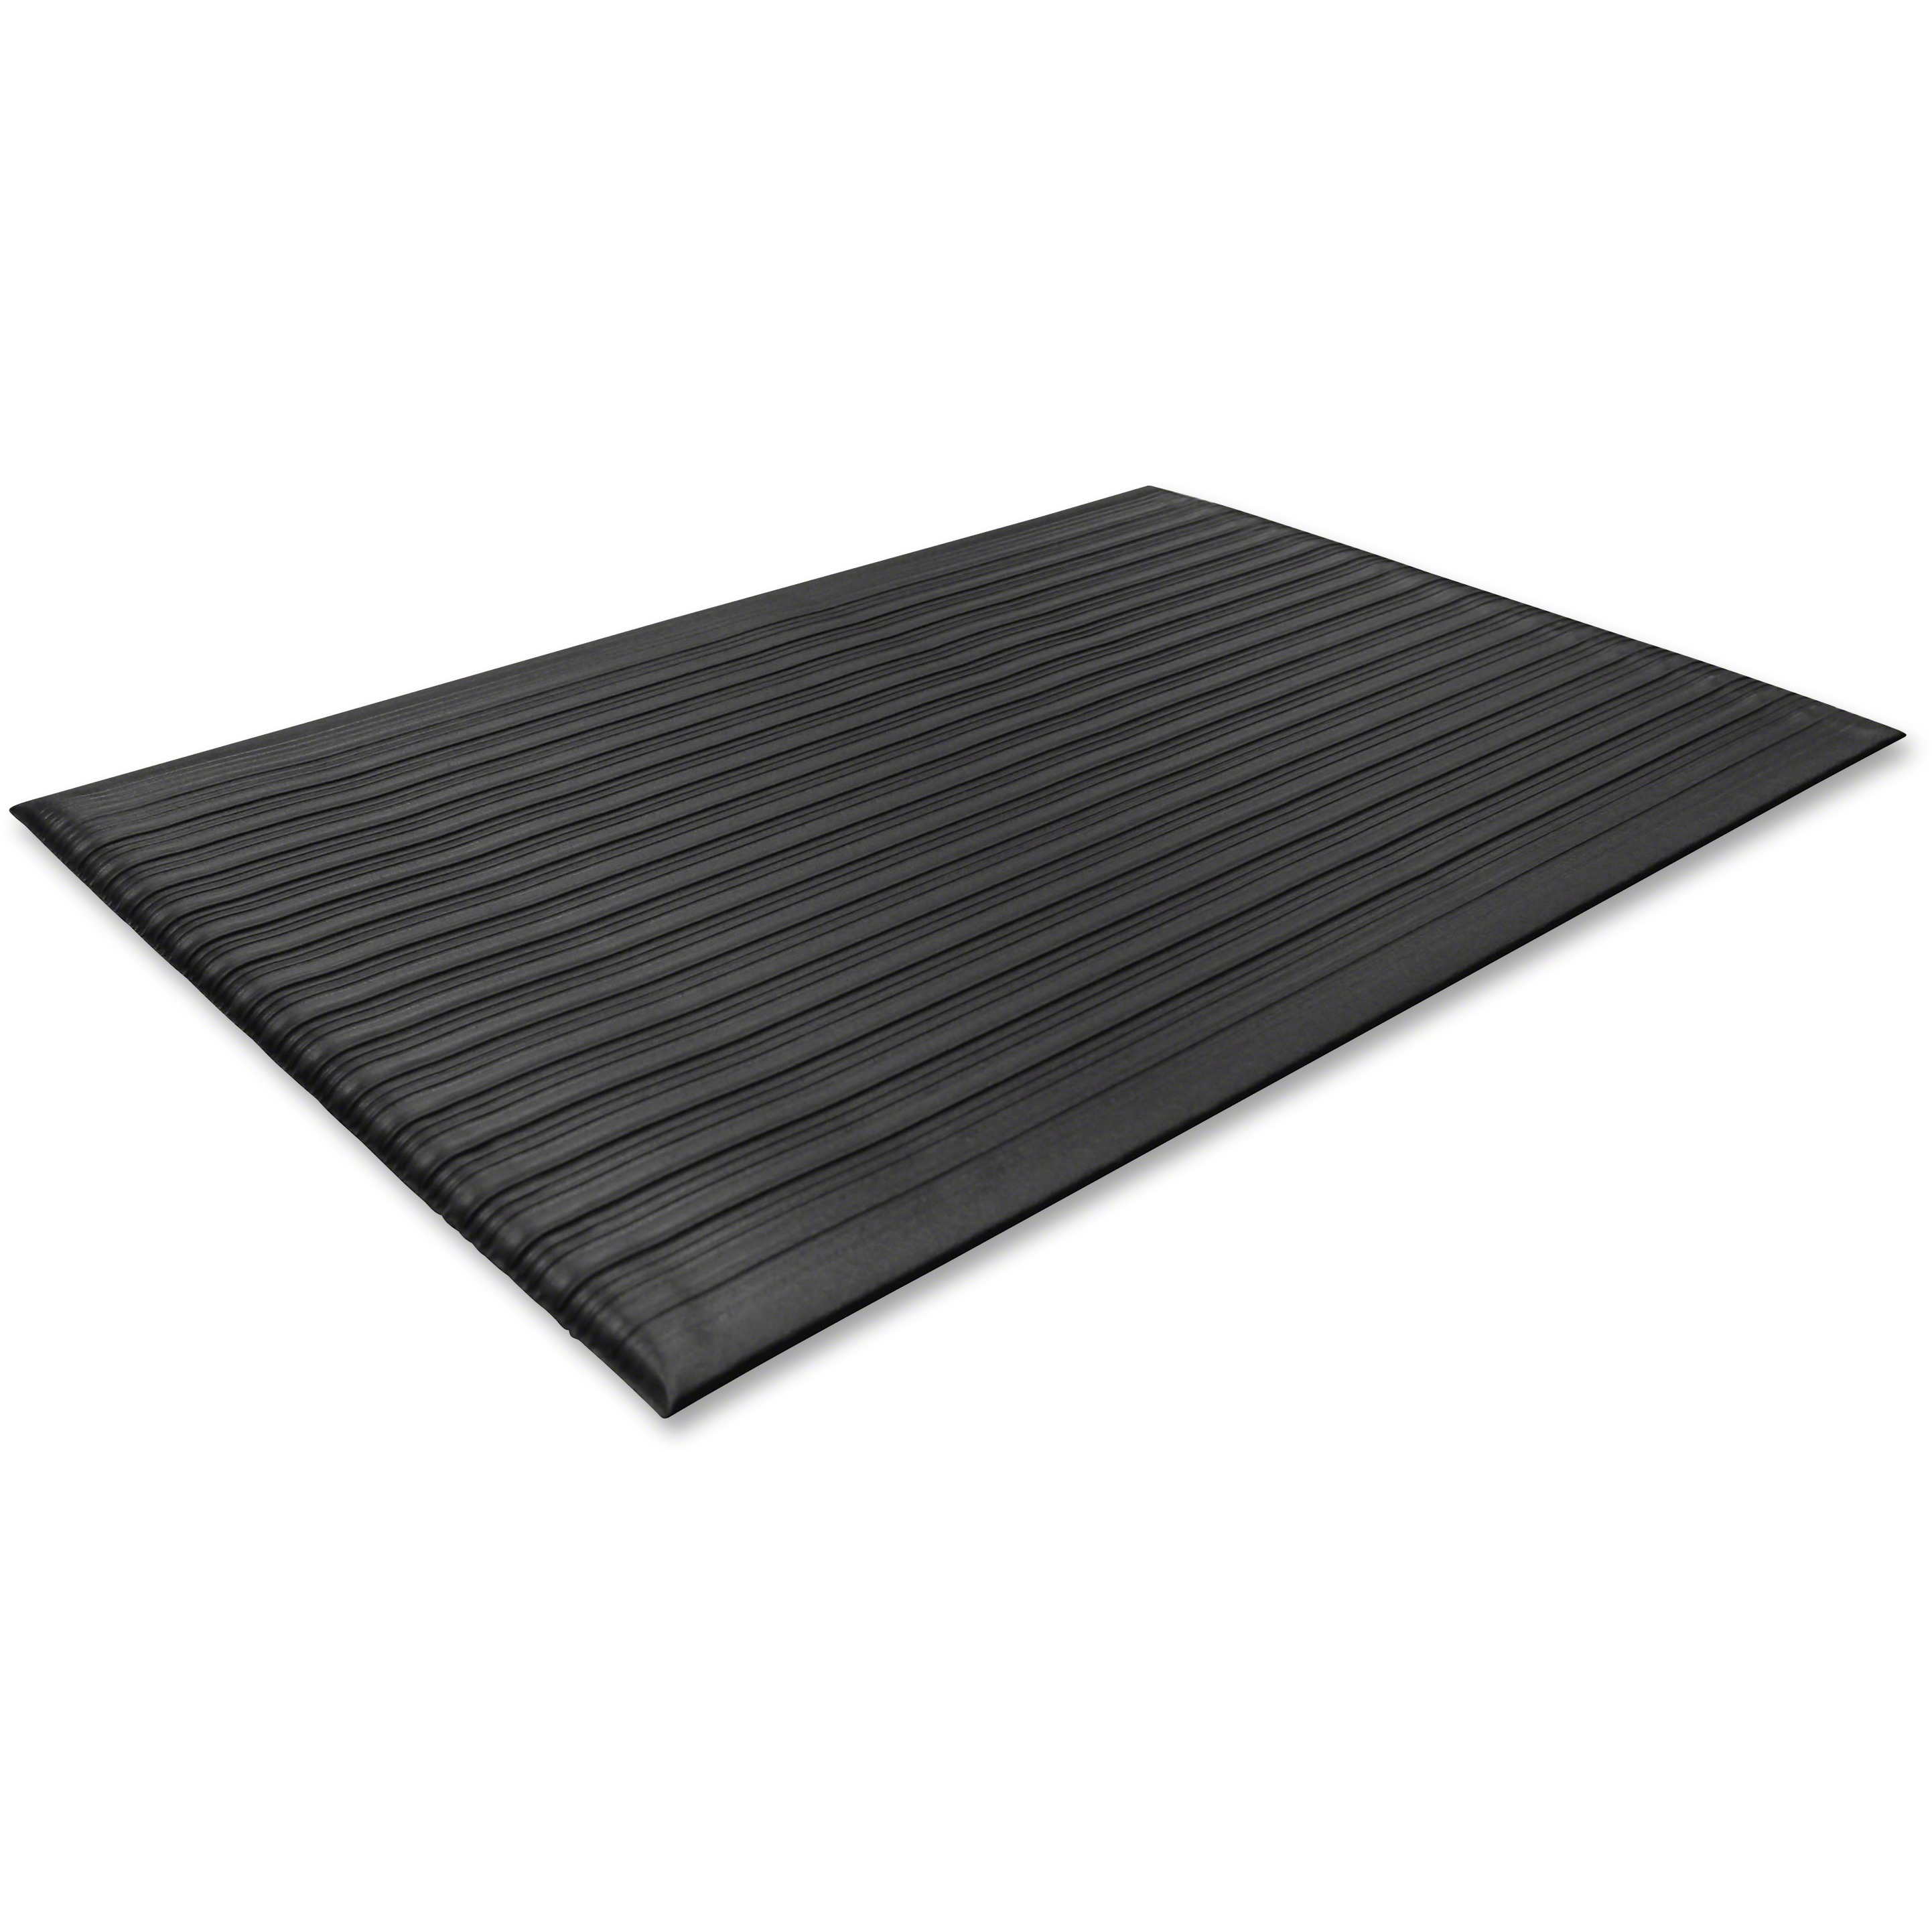 Guardian Air Step Anti-Fatigue Mat, 24 x 36, Black